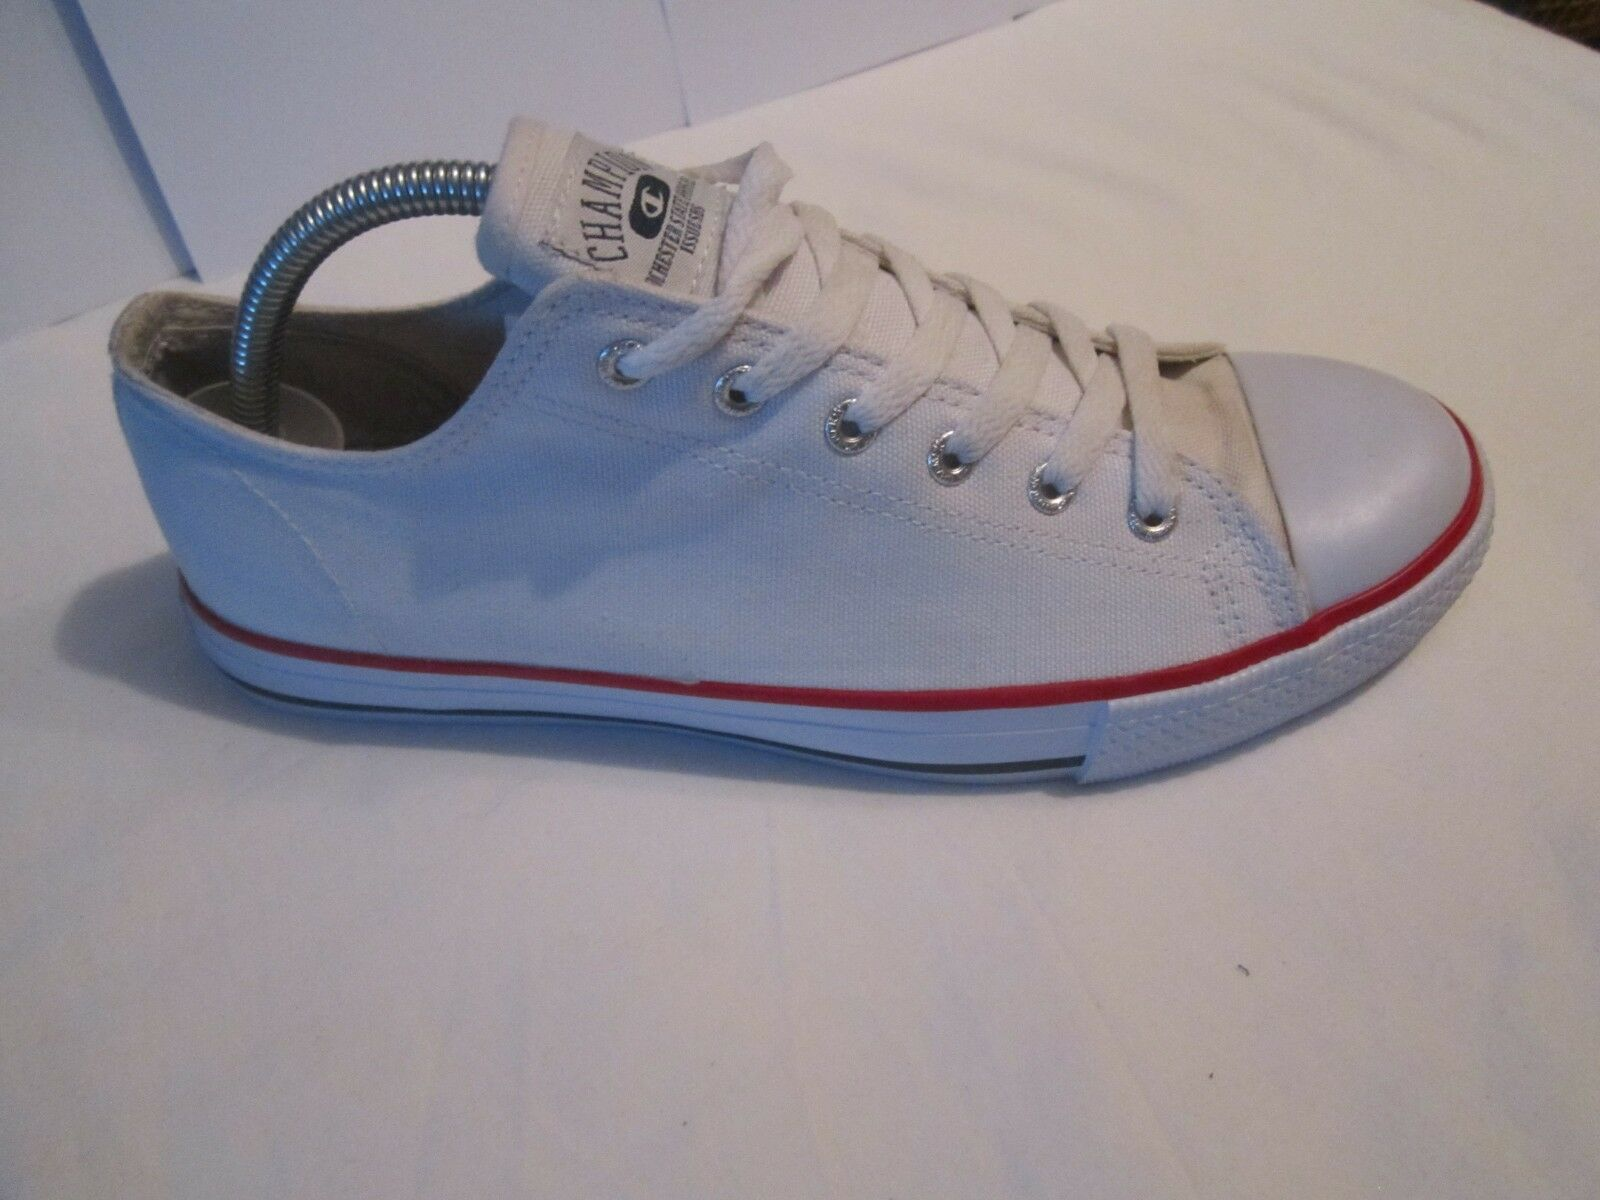 69927f9d4 ... Mens Champion Trainers Low Low Low Tops White Red Size 8 Canvas deck  shoes 5d8b90 ...